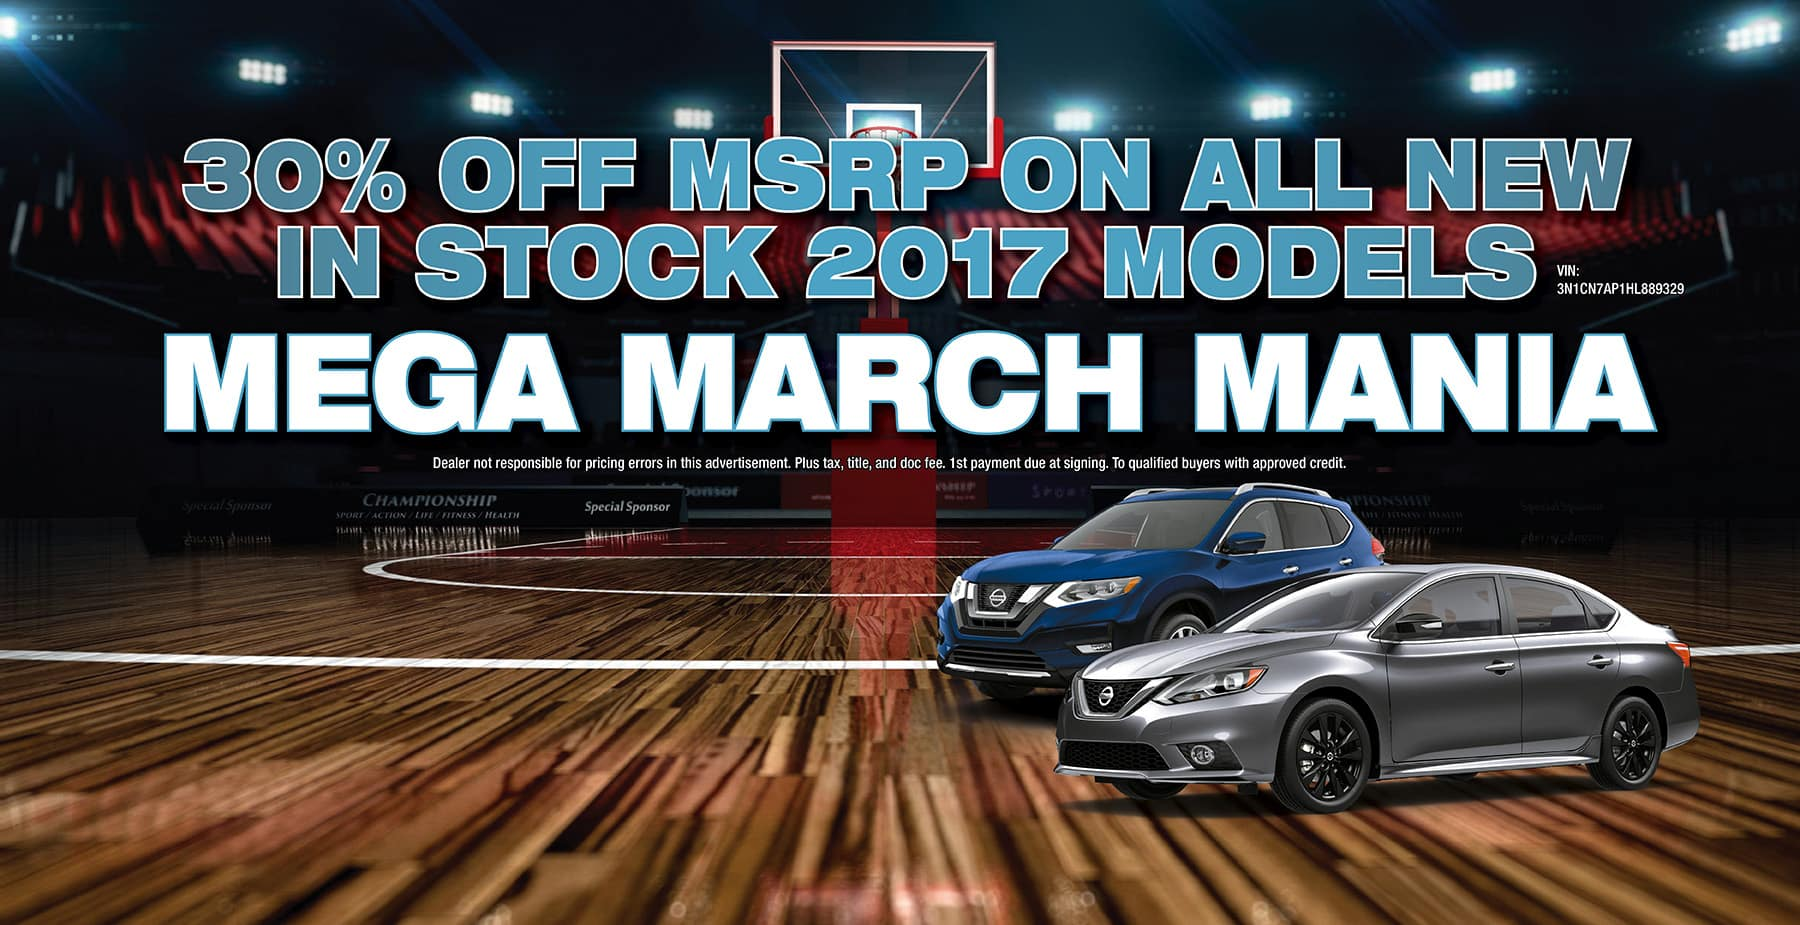 March Mania 30% OFF all new in stock 2017 Models at Star Nissan!